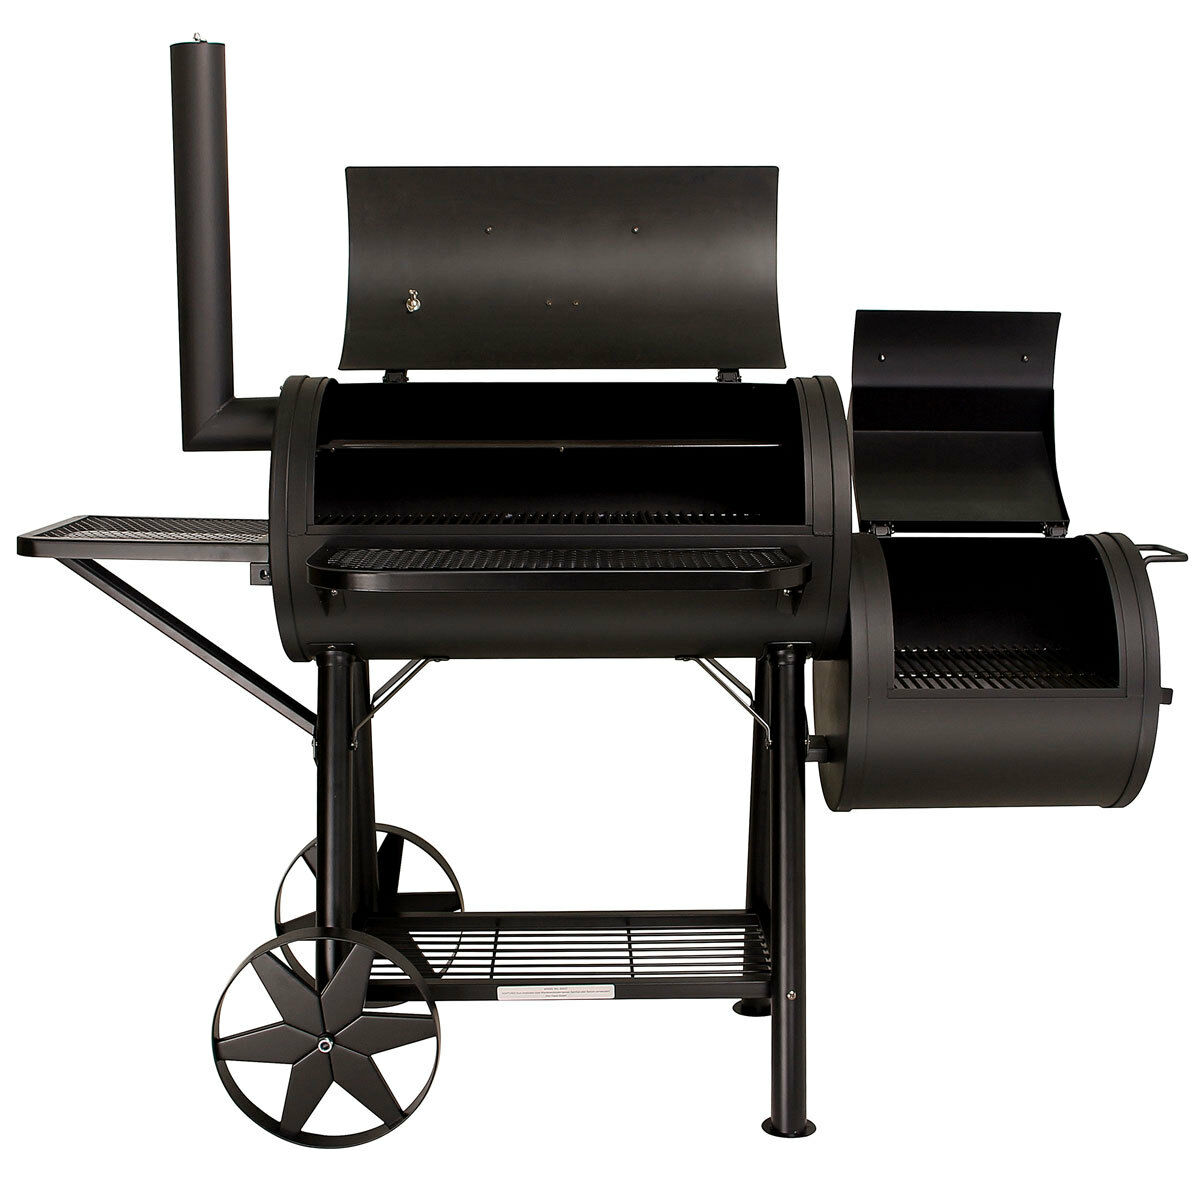 taino massiver smoker bbq grillwagen holzkohle grill ca 90kg 3 5mm stahl neu eur 379 90. Black Bedroom Furniture Sets. Home Design Ideas